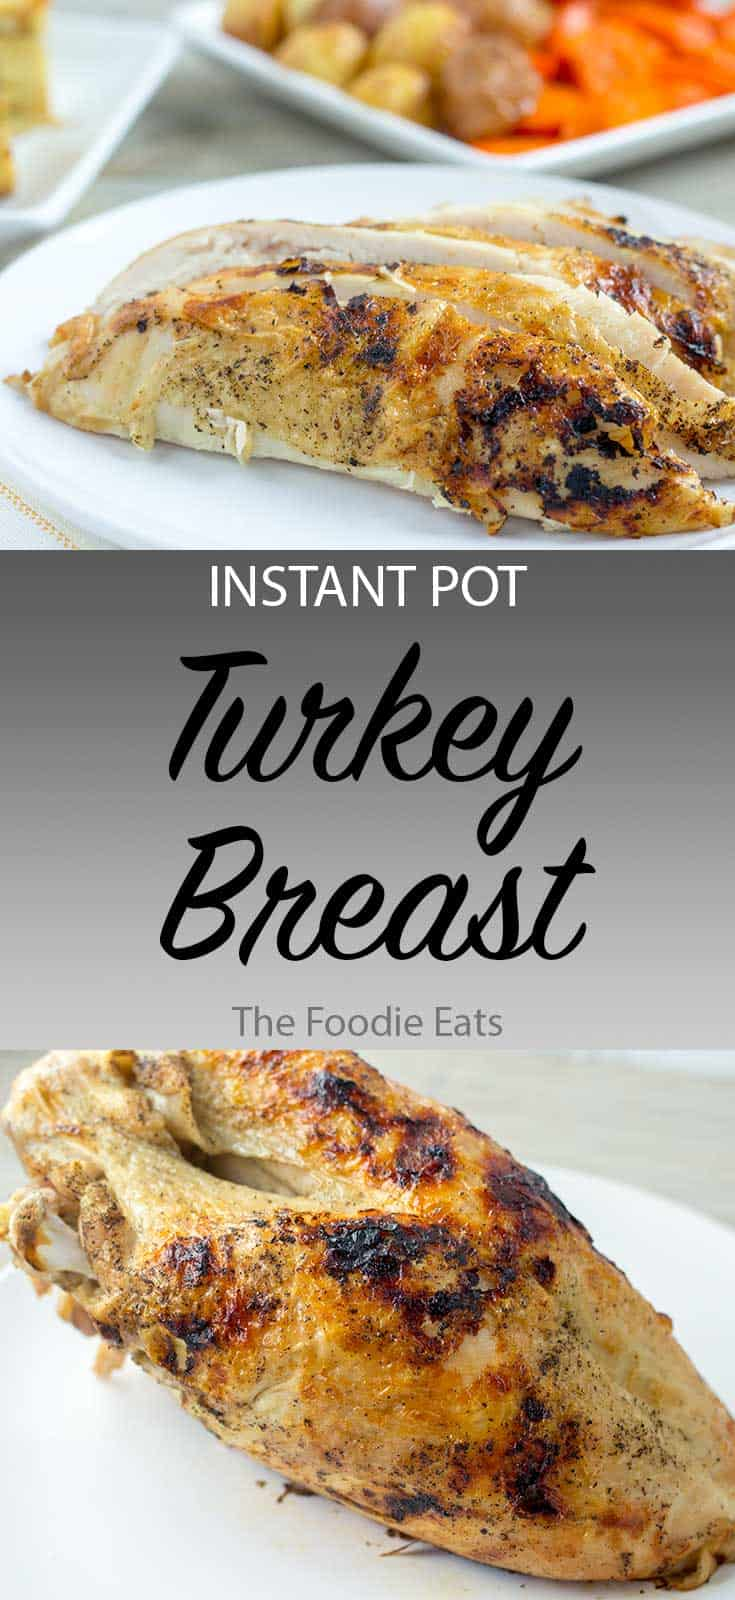 Instant Pot Turkey Breast | The Foodie Eats